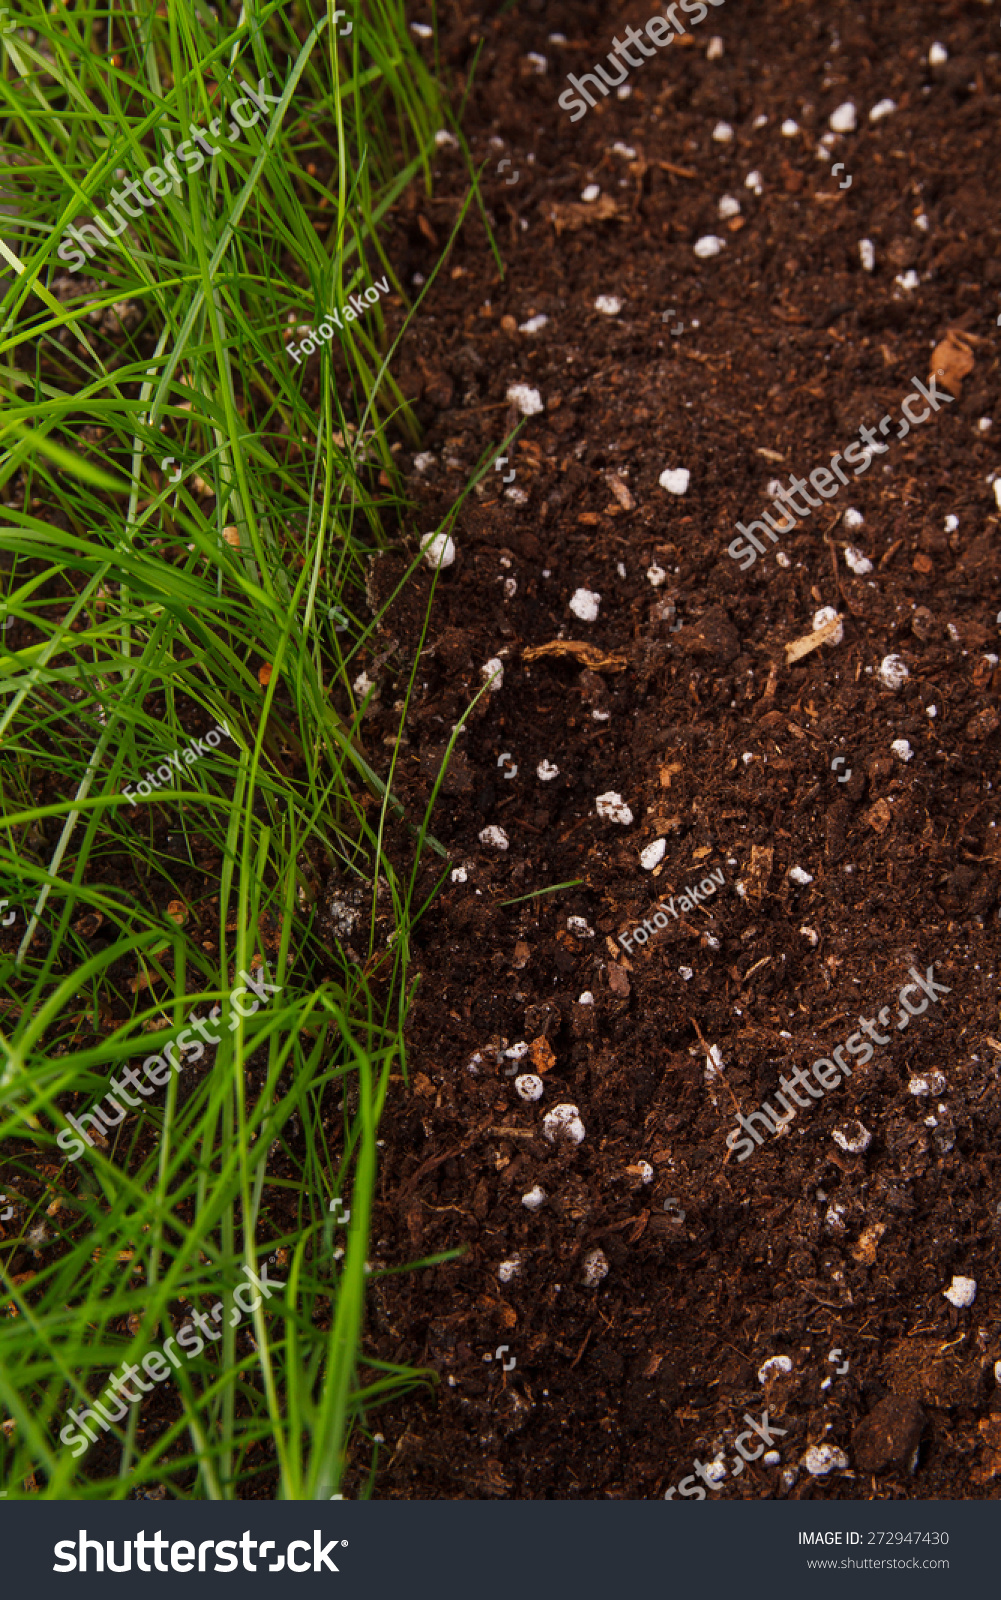 Green grass soil stock photo 272947430 shutterstock for Soil and green